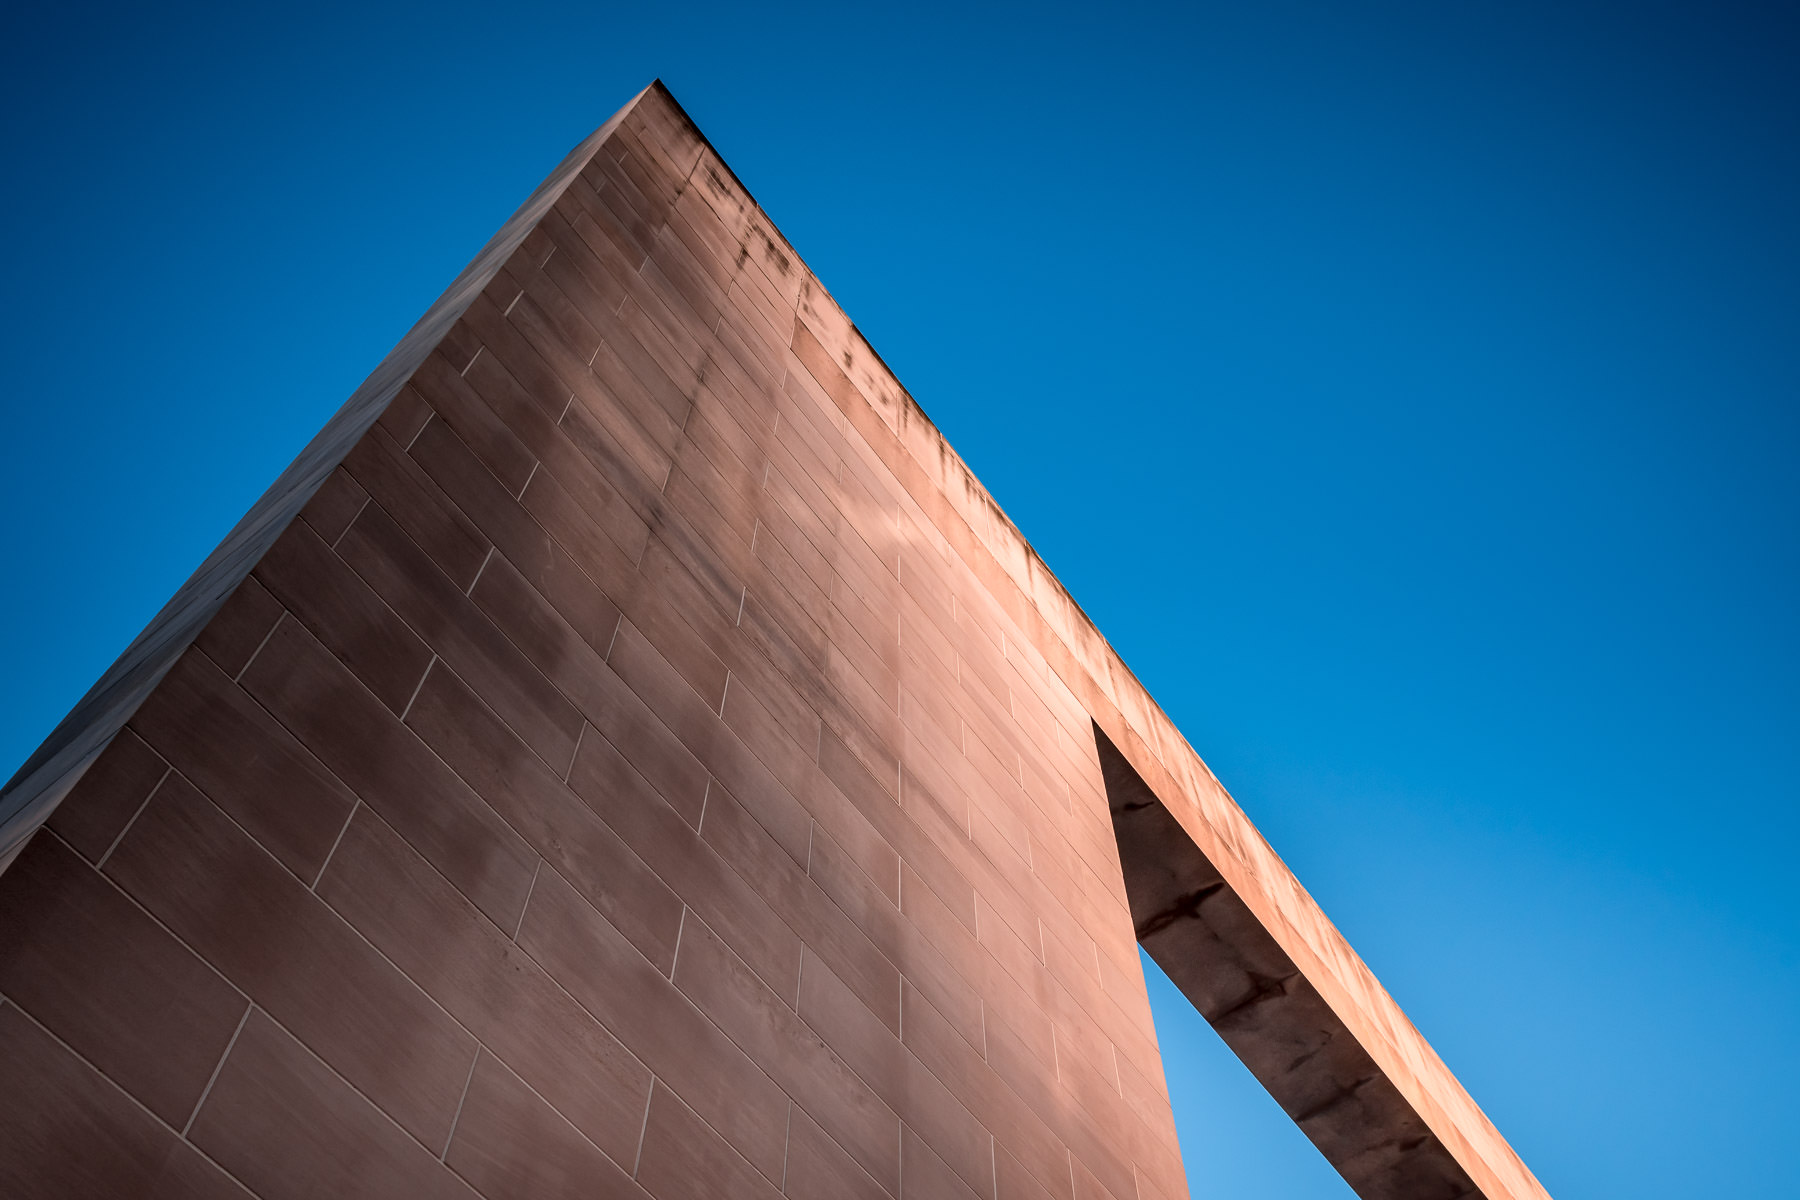 The Emery Reves Arch of Peace rises into the clear sky at the Meyerson Symphony Center in the Dallas Arts District.